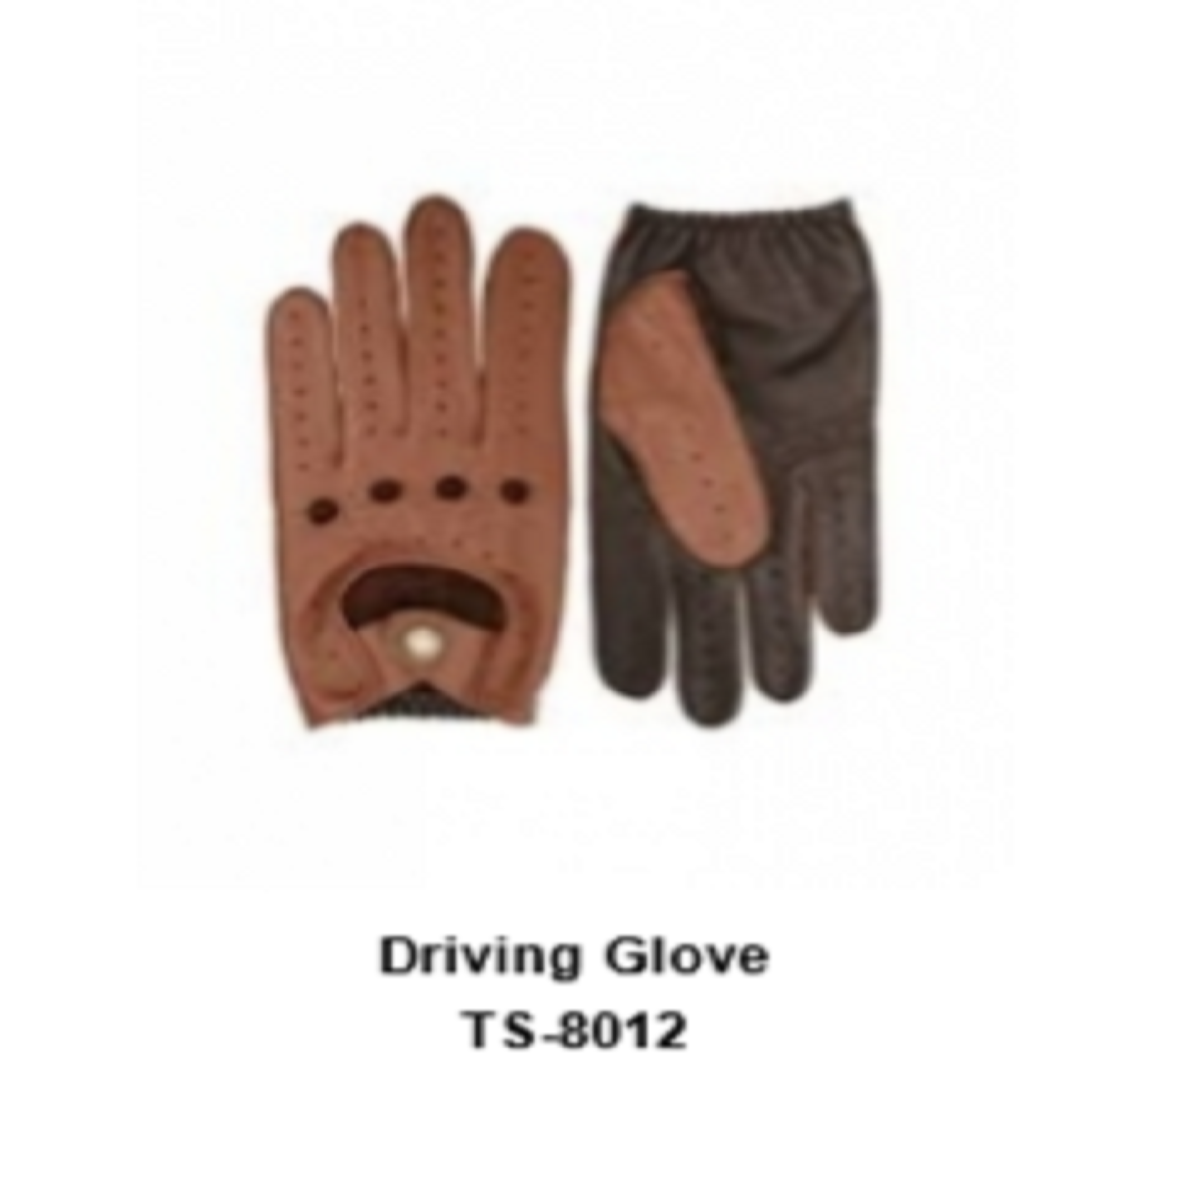 Leather Men's Fashion Driving Gloves Model No. TSI 8012